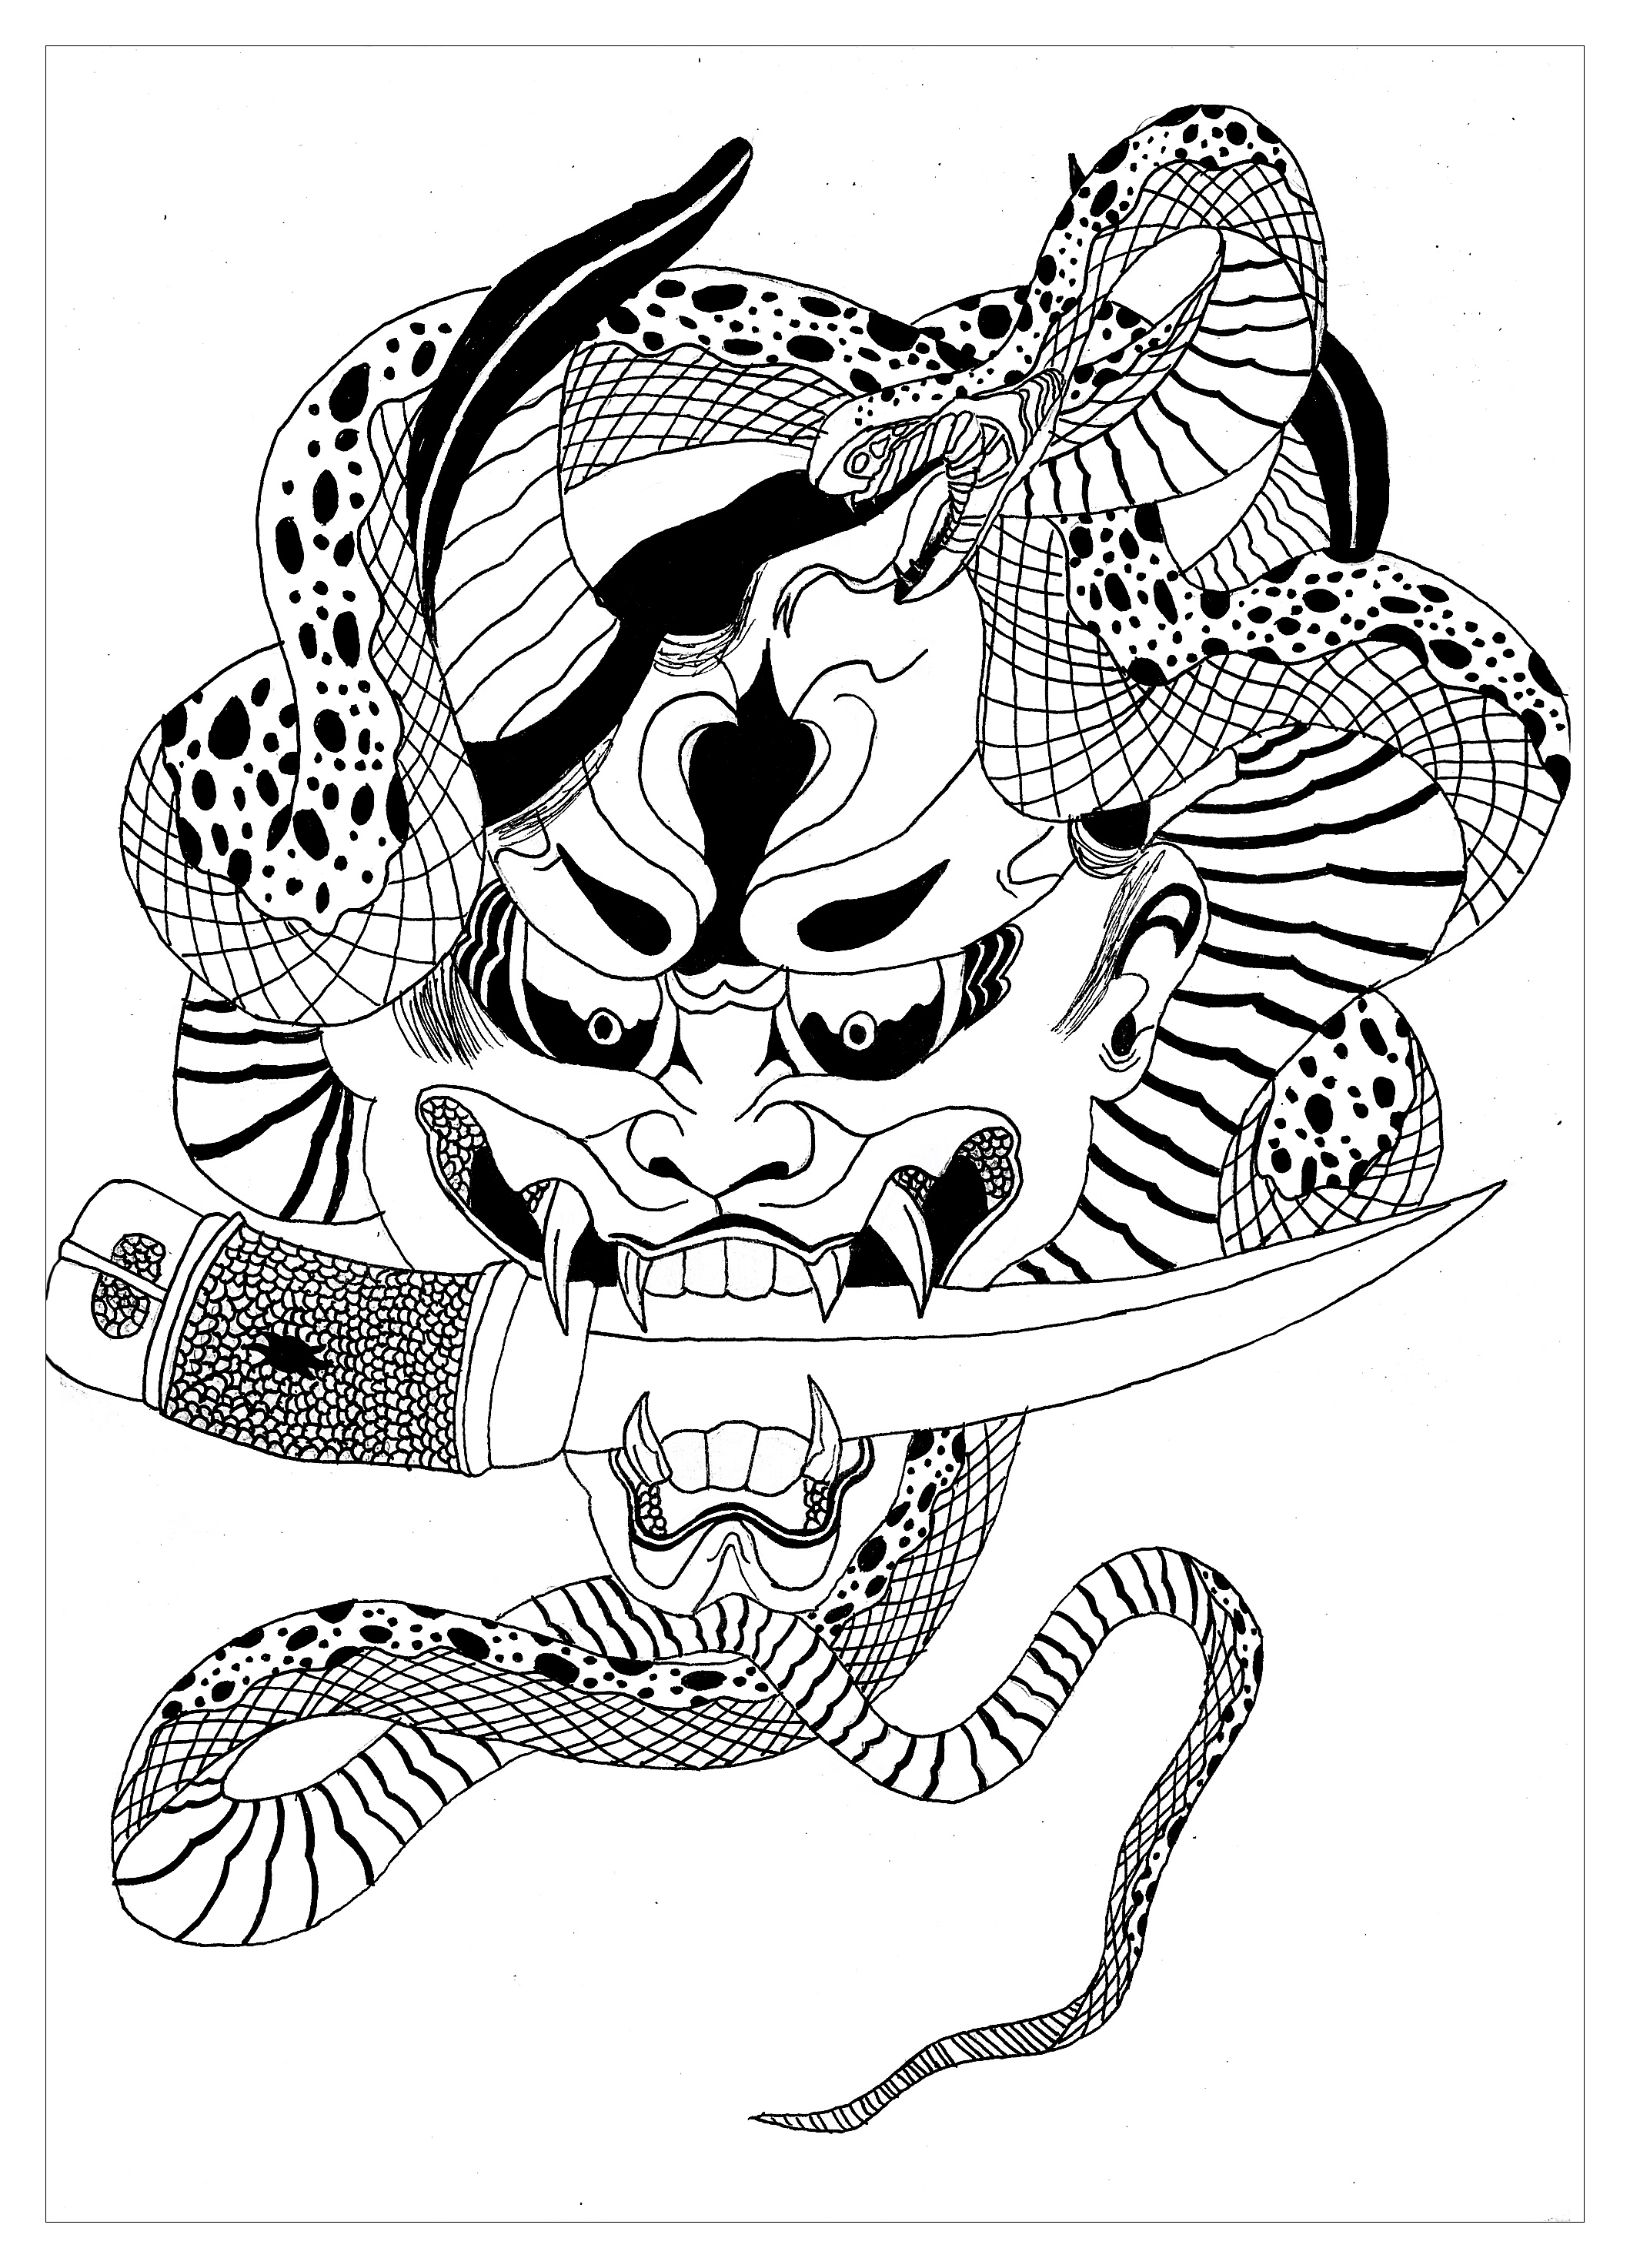 demon anime coloring pages demon colouring pages sketch coloring page anime coloring demon pages